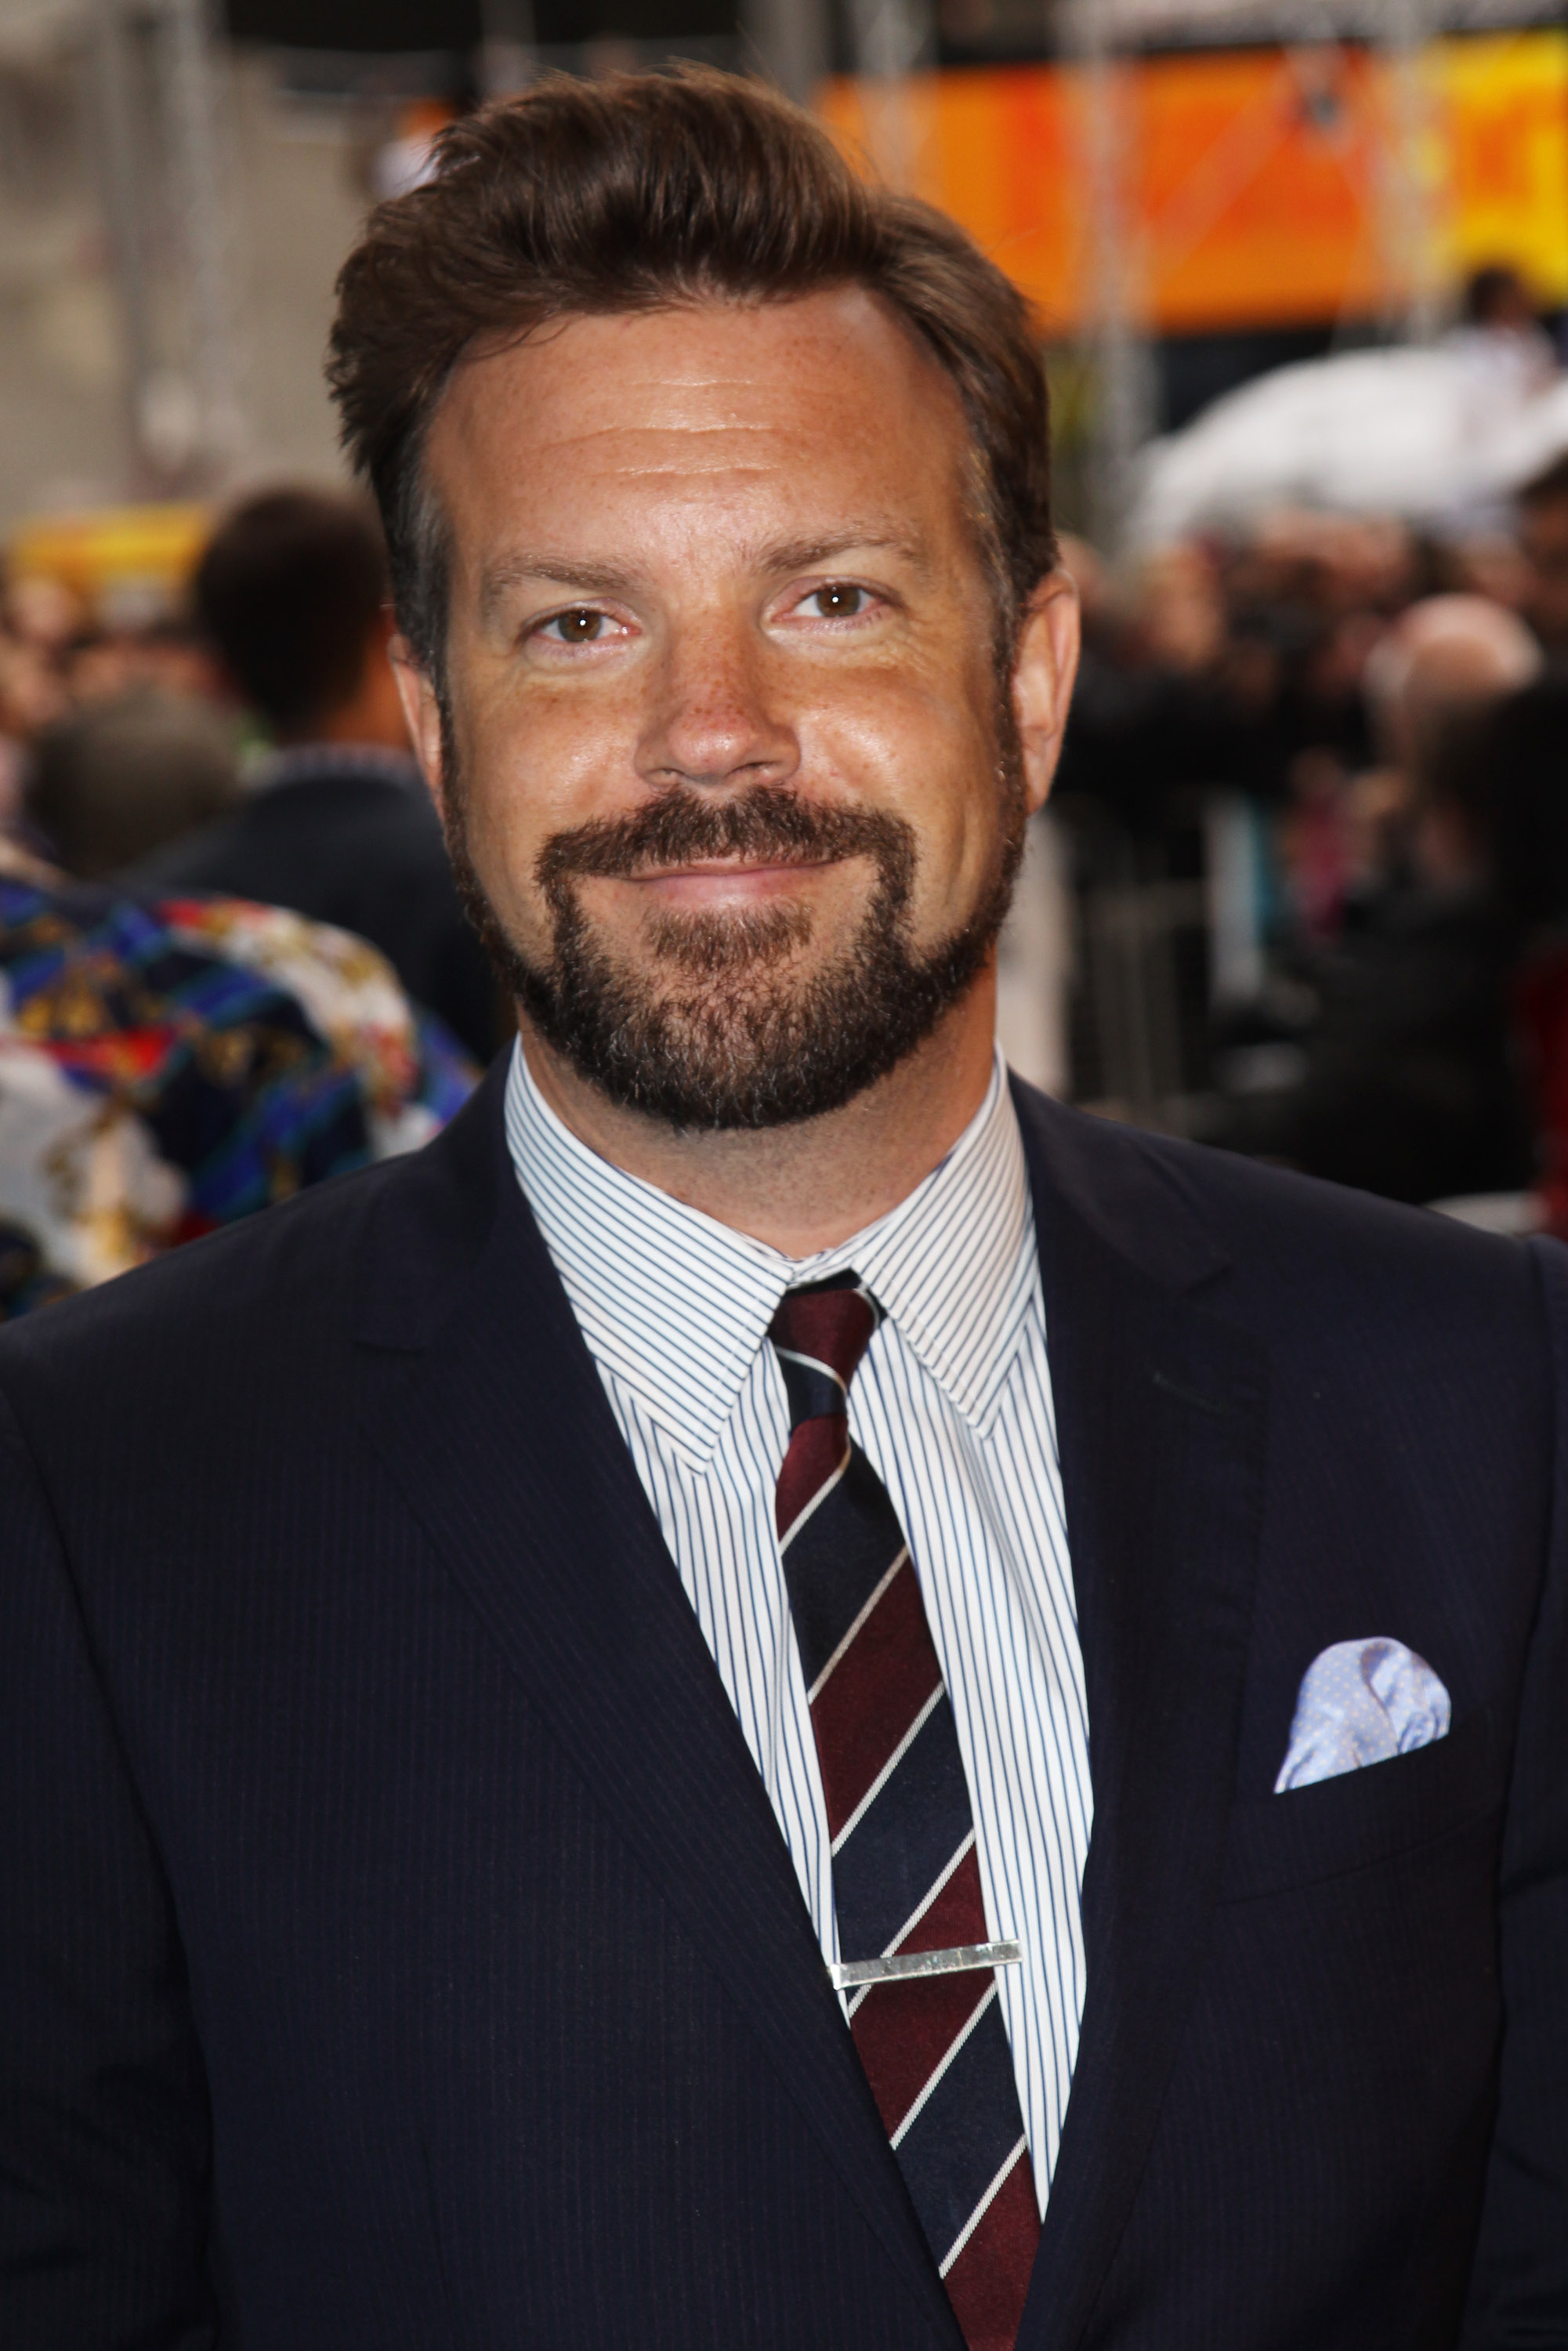 Jason Sudeikis at the London premiere of Horrible Bosses.